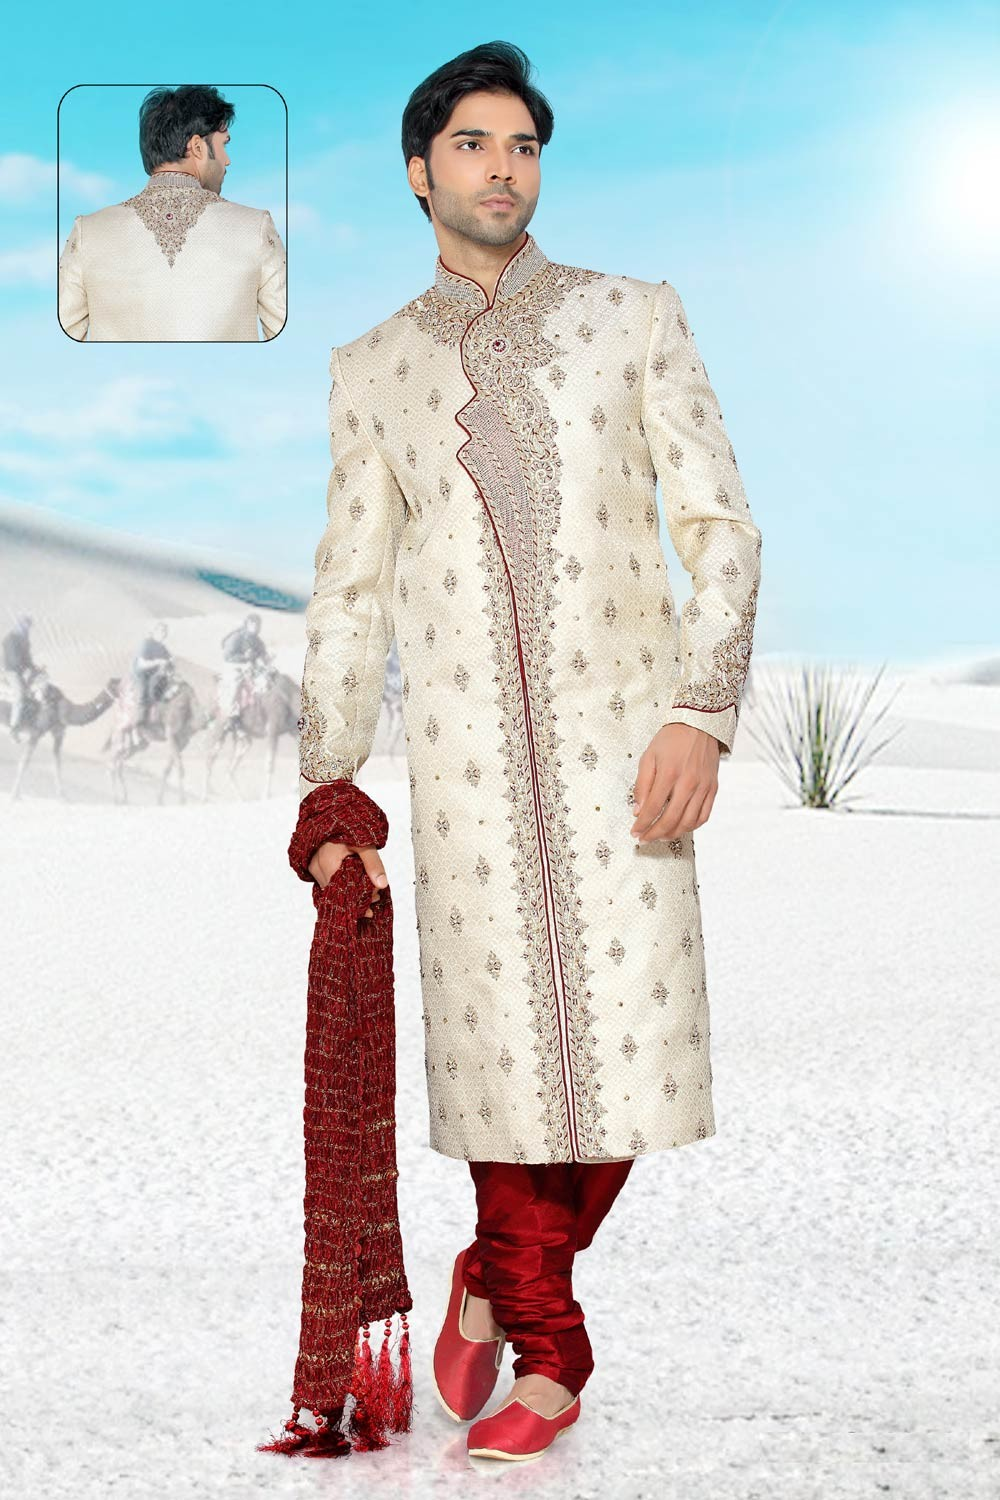 Buy Cream Brocade Sherwani for men